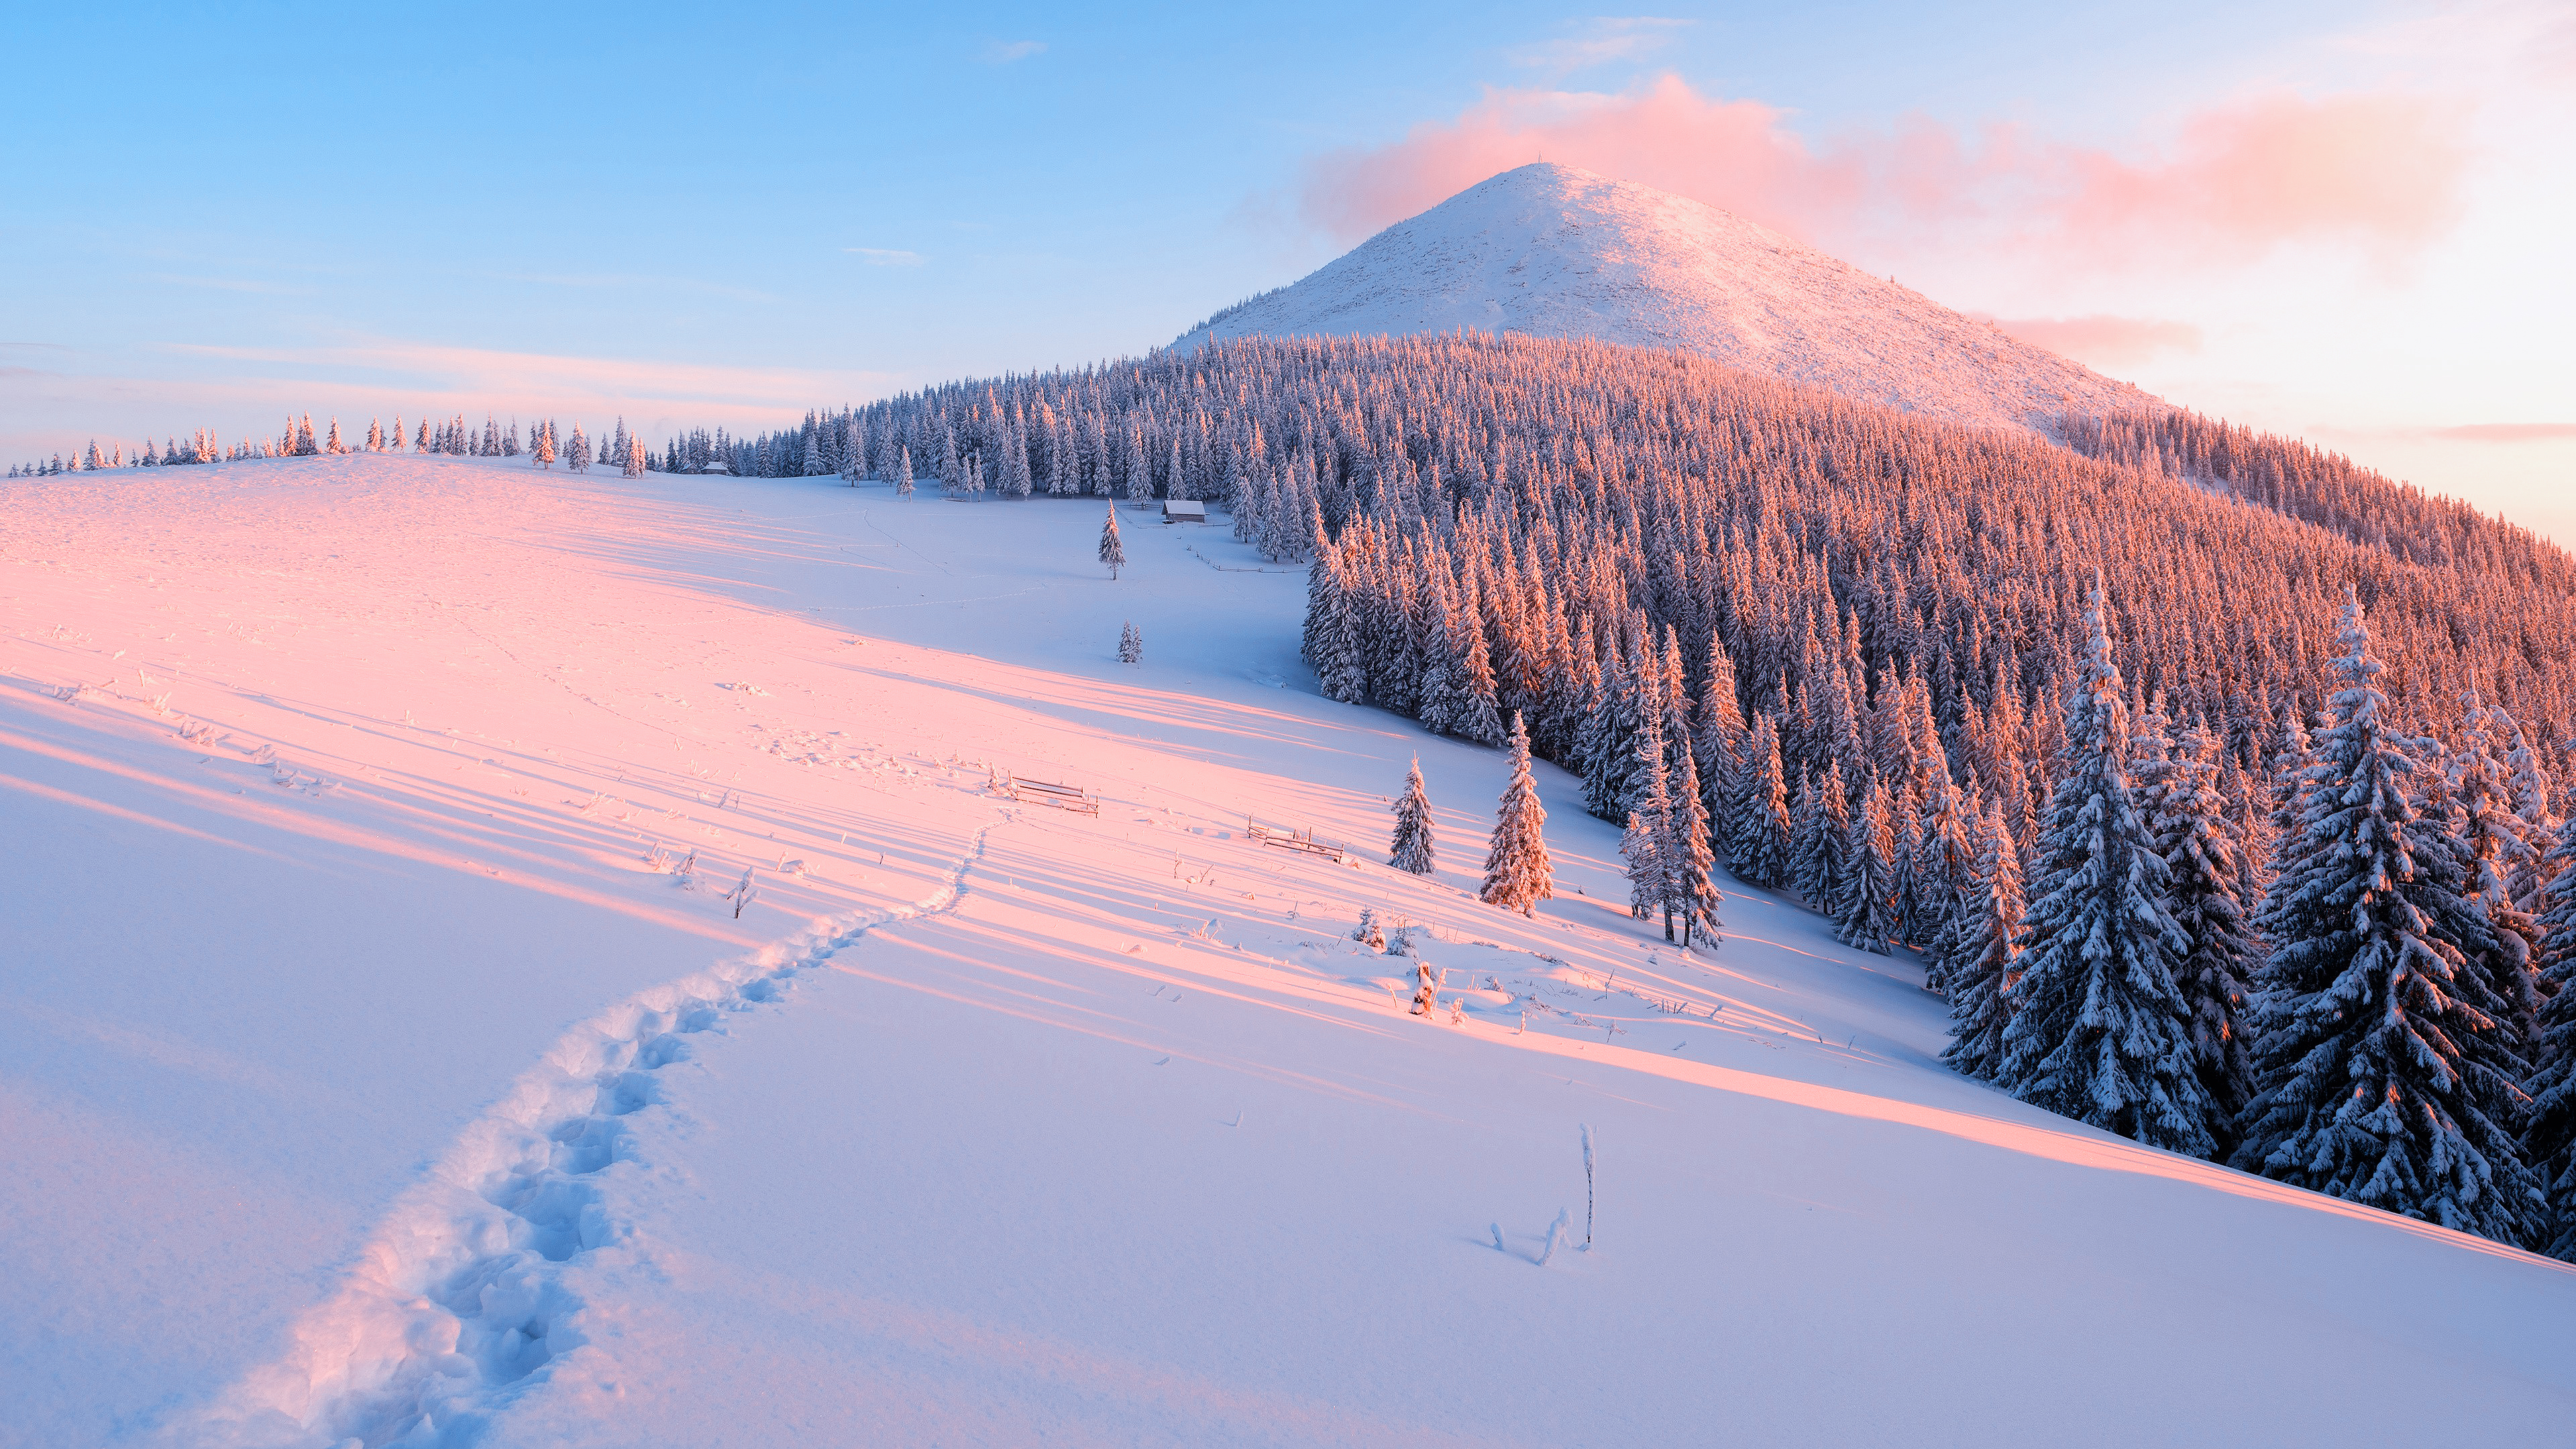 General 3840x2160 snow winter cold landscape forest